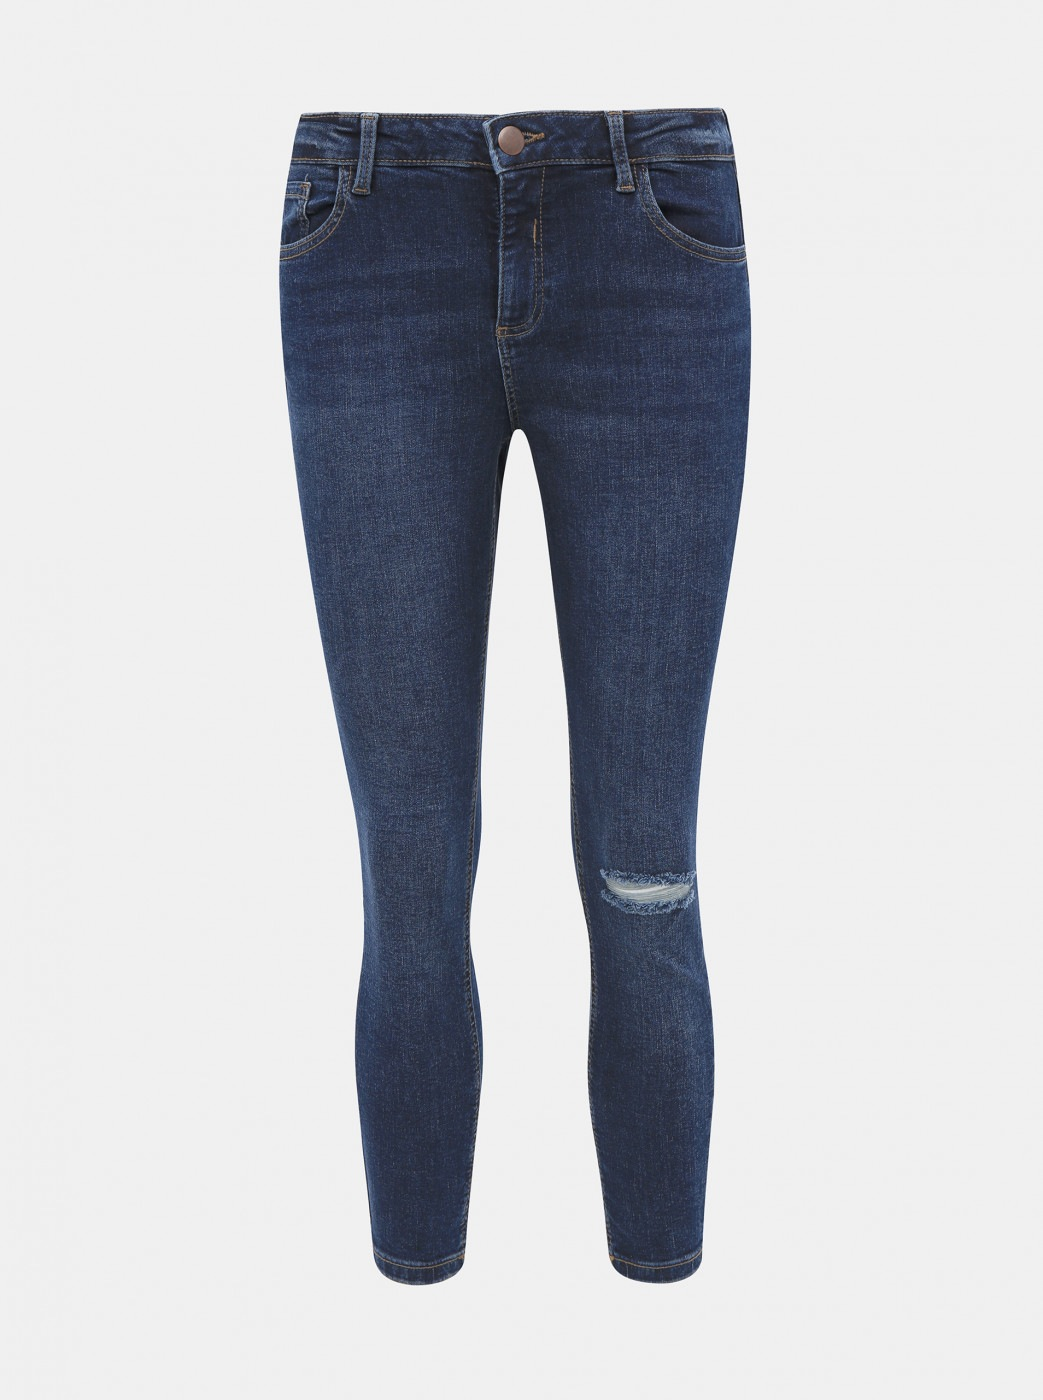 Blue cropped skinny fit jeans by Dorothy Perkins Darcy